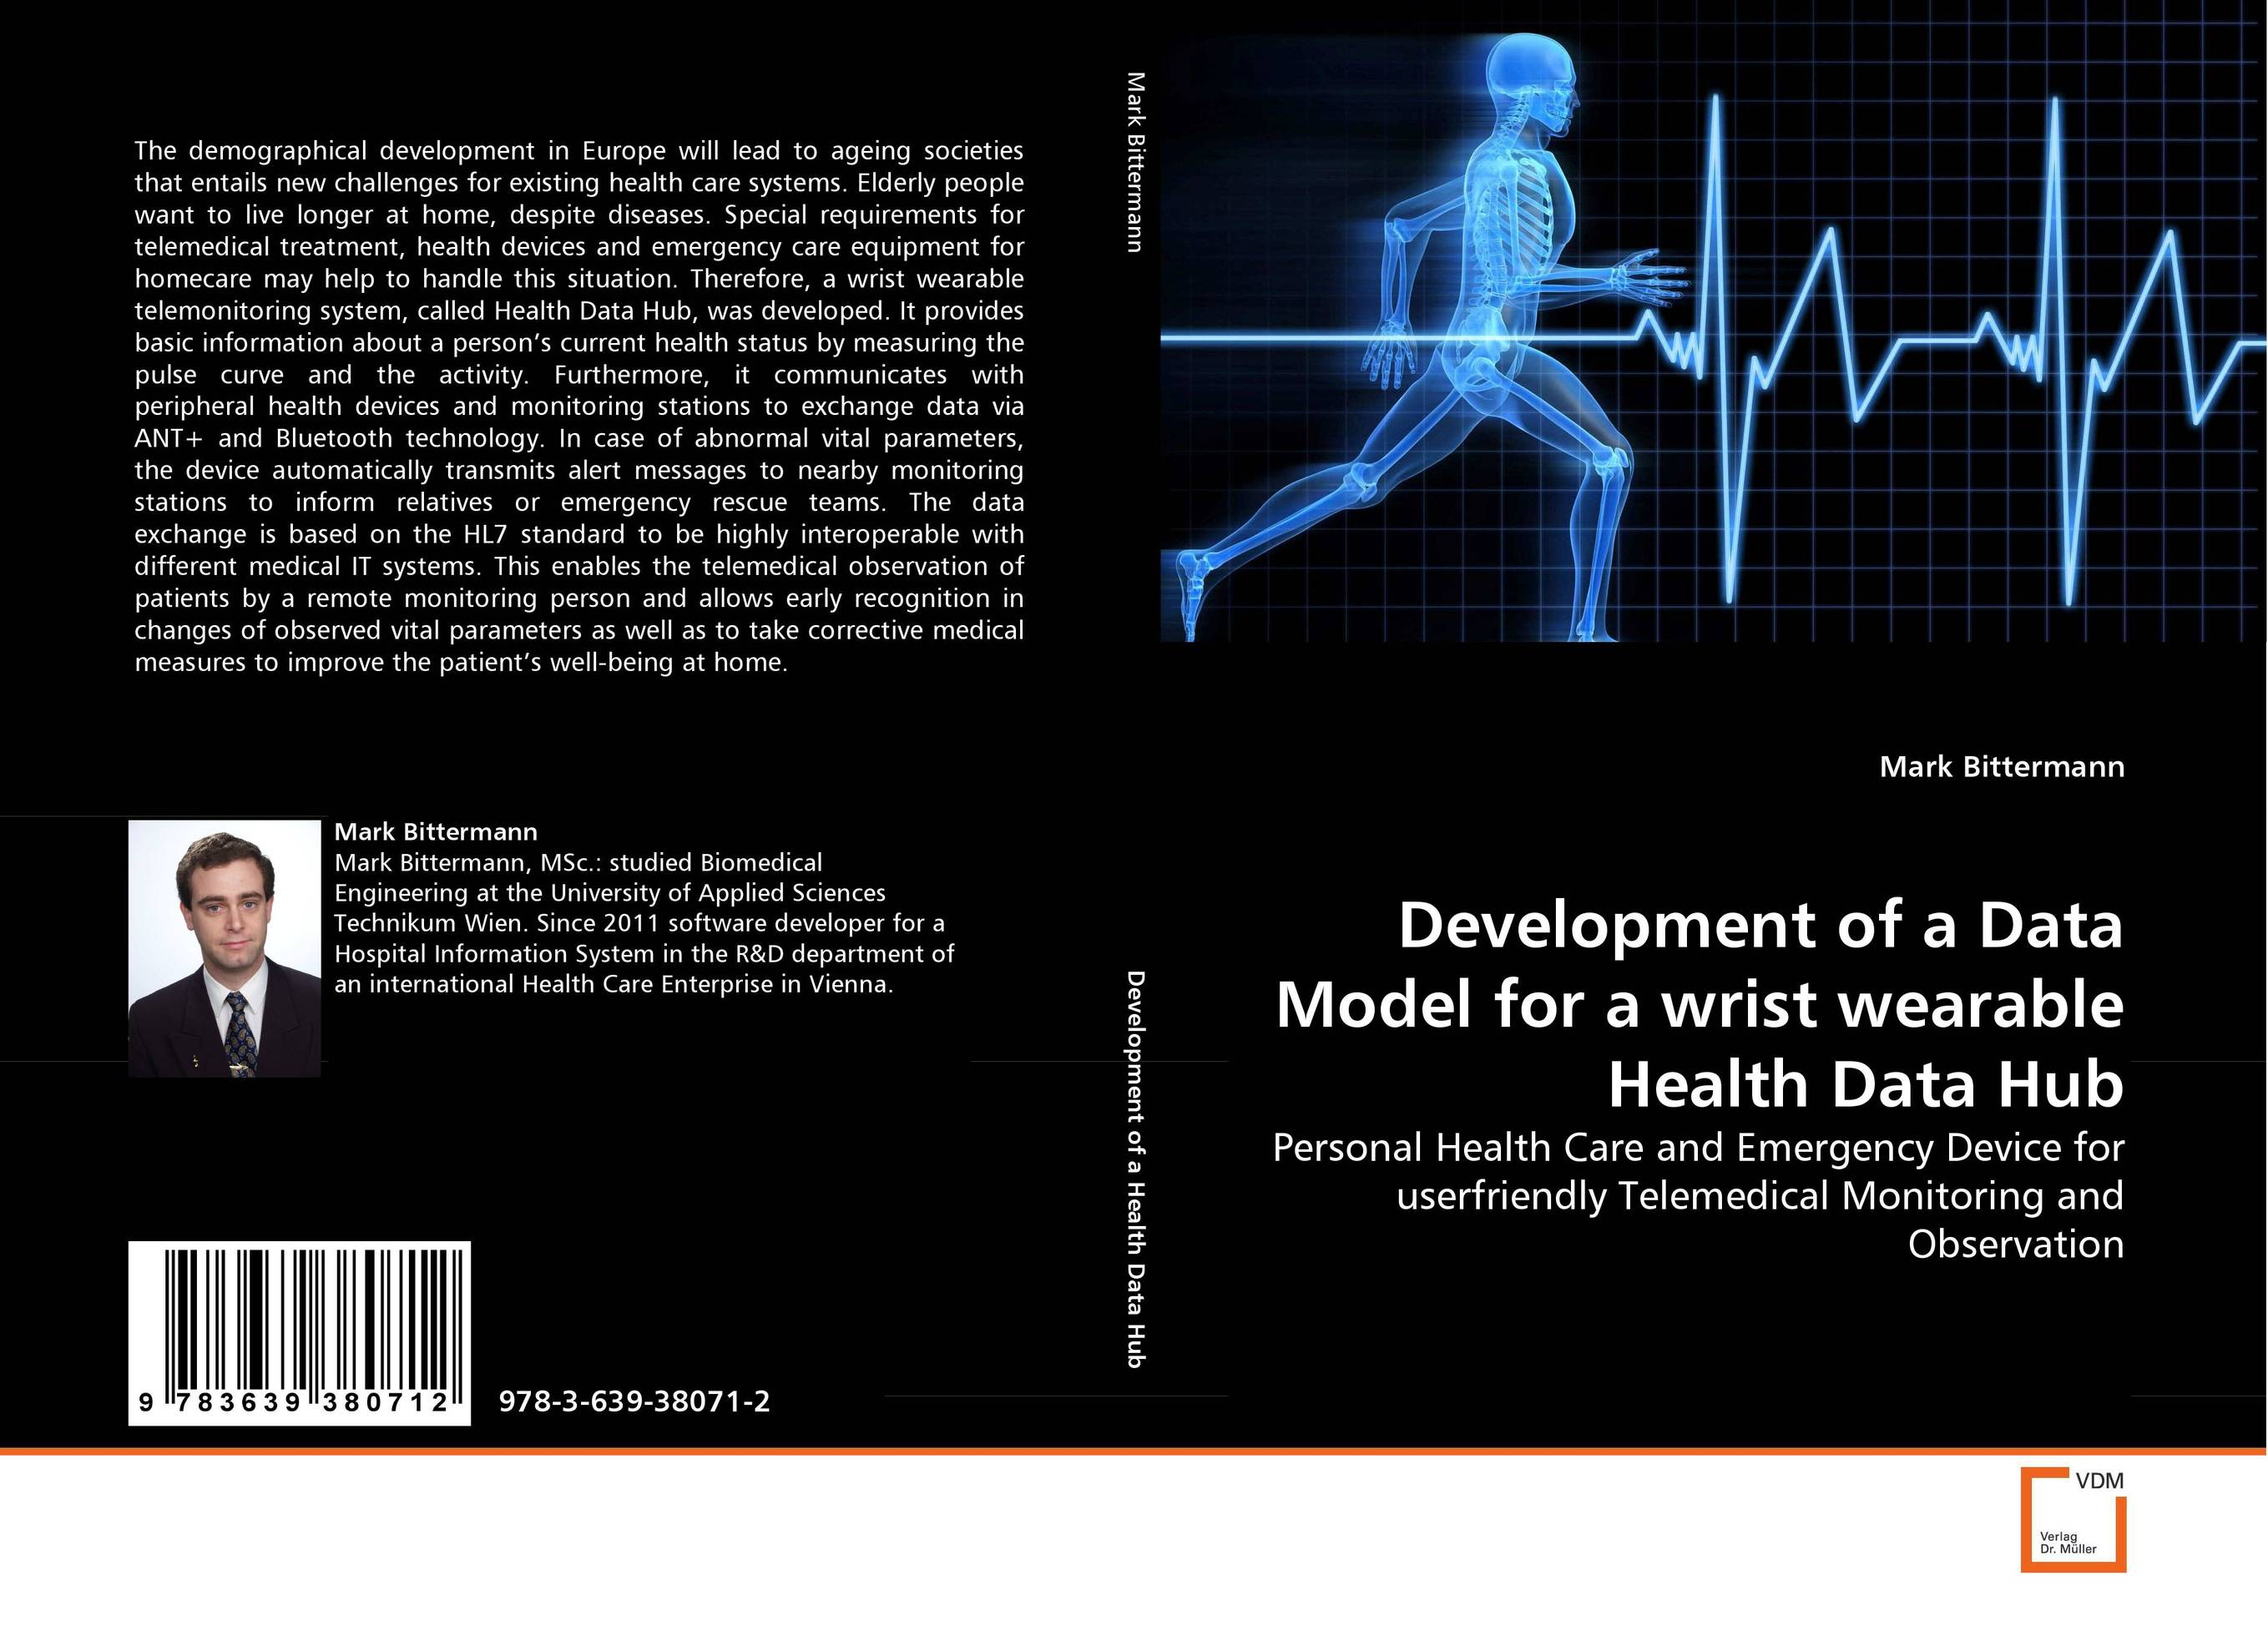 Development of a Data Model for a wrist wearable Health Data Hub bernard i akhigbe development of a user centered evaluative model for ir systems